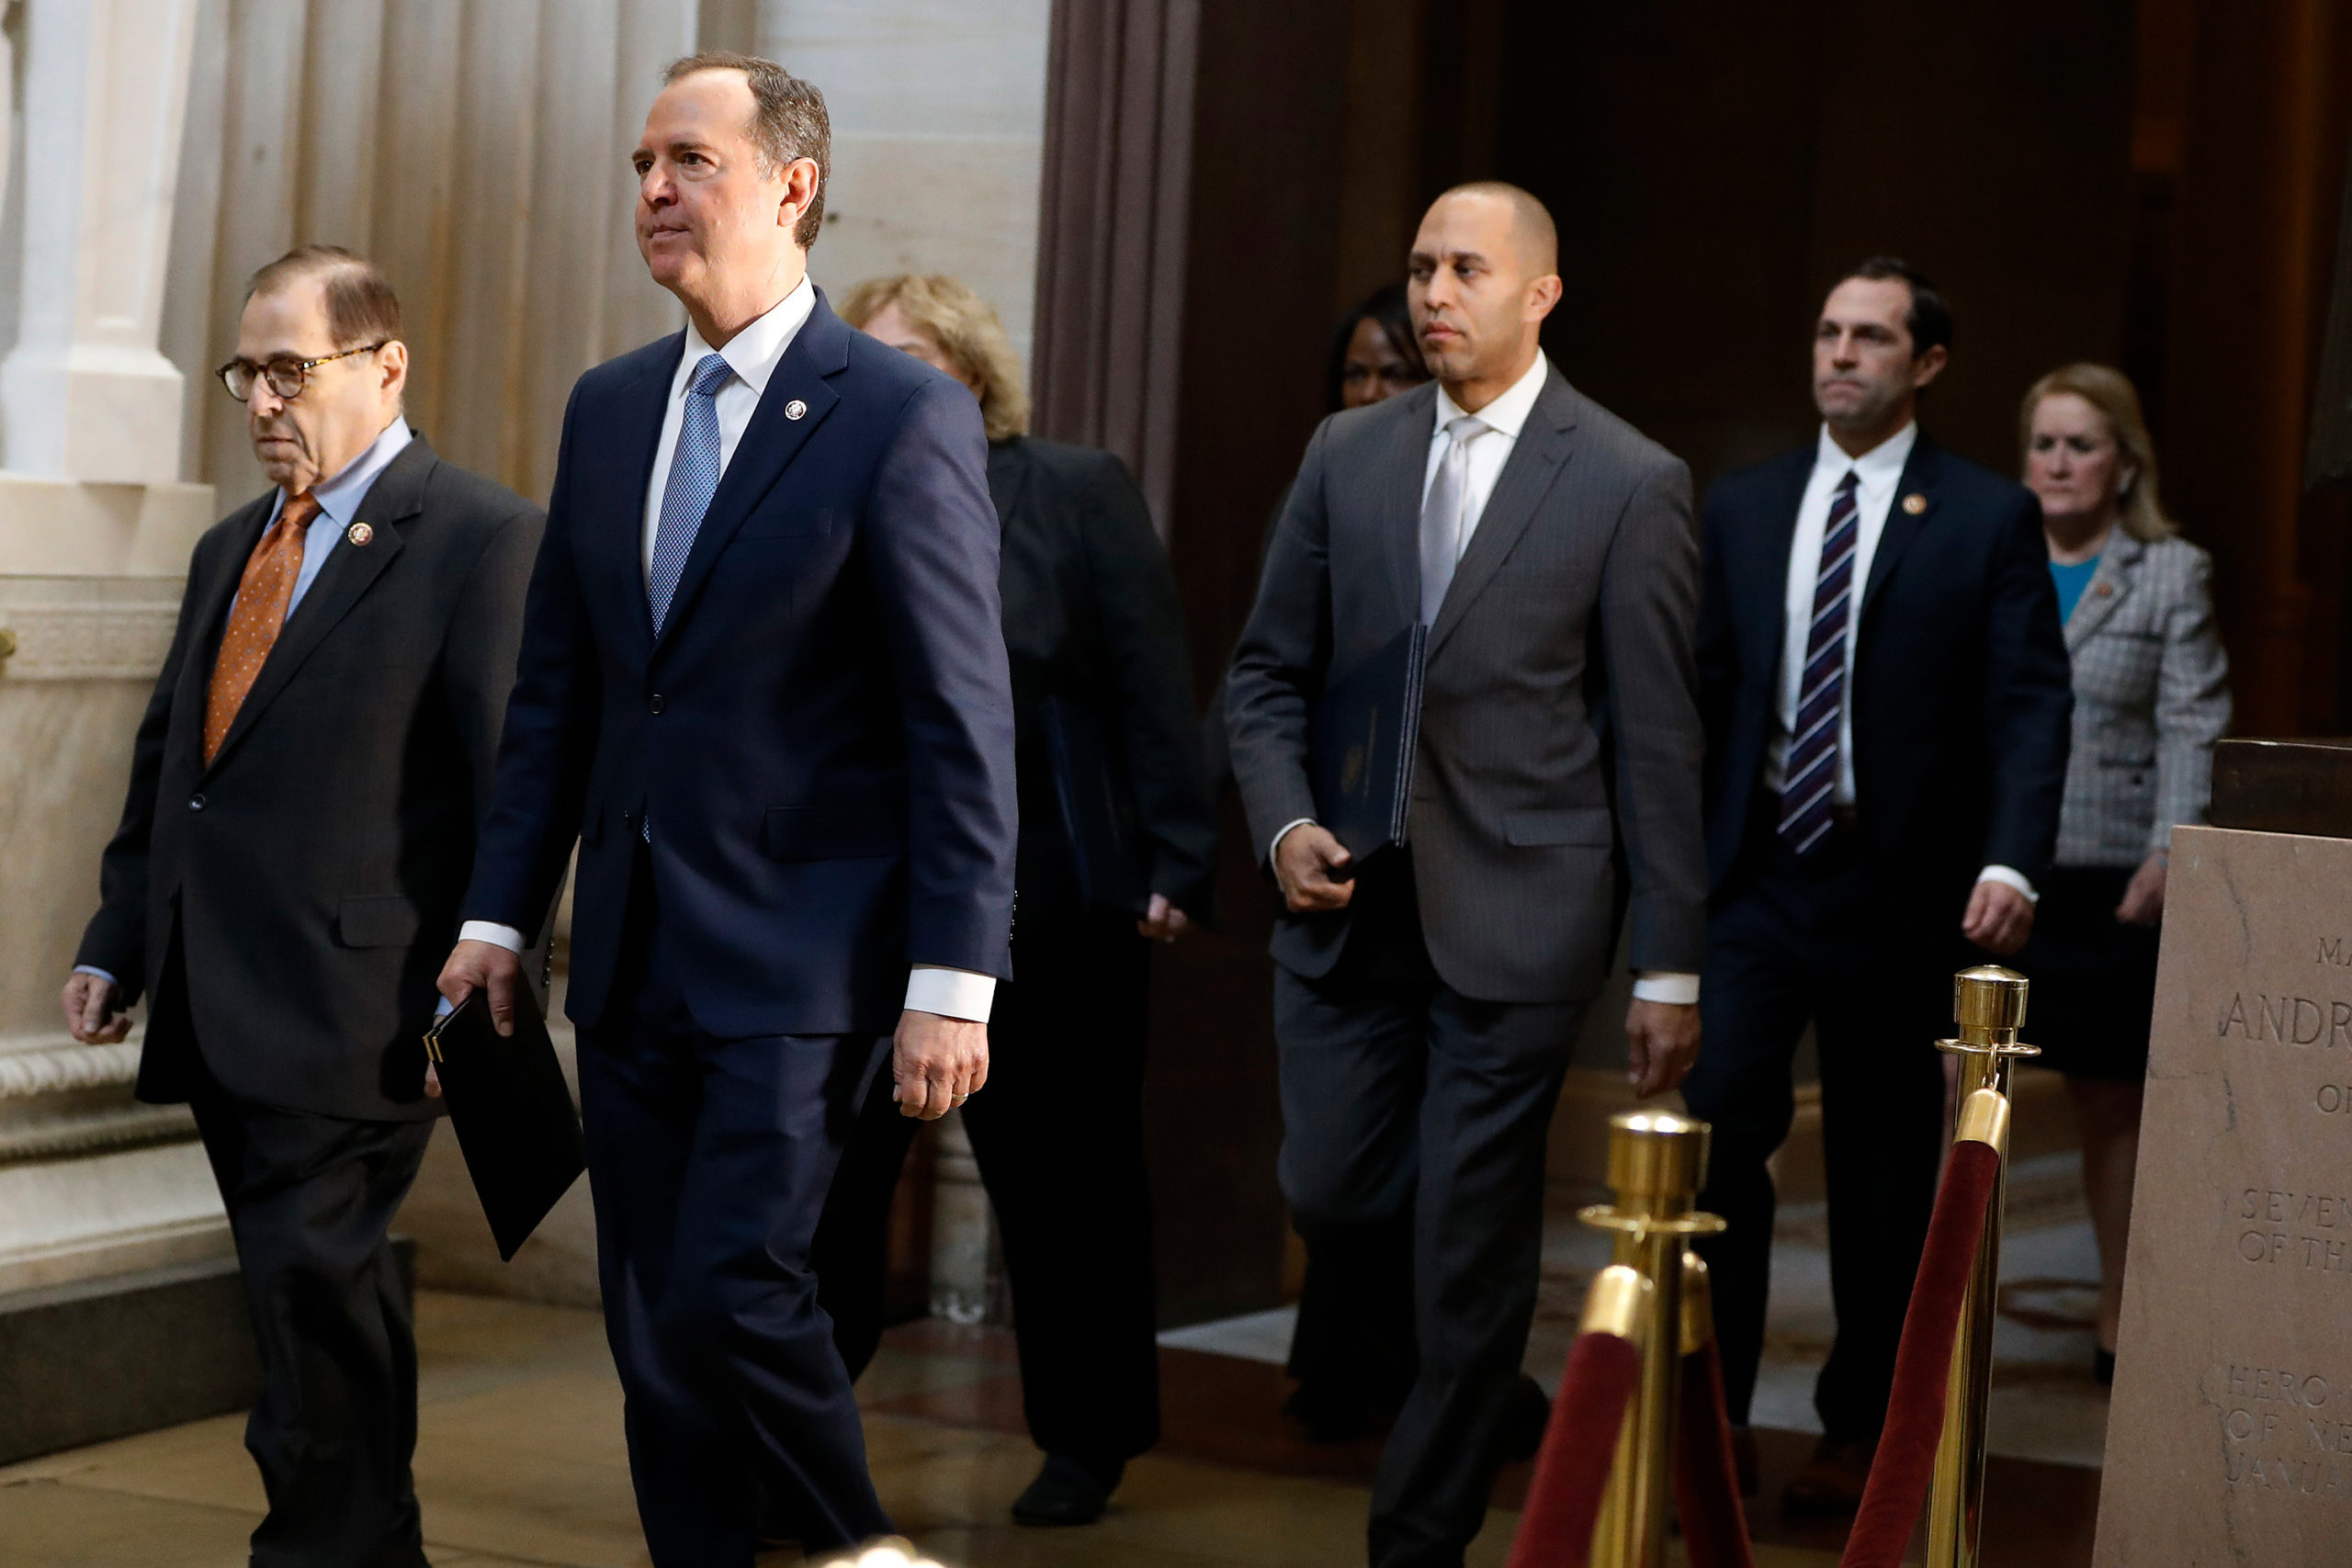 Impeachment managers, House Judiciary Committee Chairman, Rep. Jerrold Nadler, D-N.Y., left, and House Intelligence Committee Chairman Adam Schiff, D-Calif., second from left, walk with as Rep. Hakeem Jeffries, D-N.Y., Rep. Sylvia Garcia, D-Texas, Rep. Val Demings, D-Fla., Rep. Zoe Lofgren, D-Calif., and Rep. Jason Crow, D-Colo., from the Senate at the Capitol in Washington, Thursday, Jan. 16, 2020.